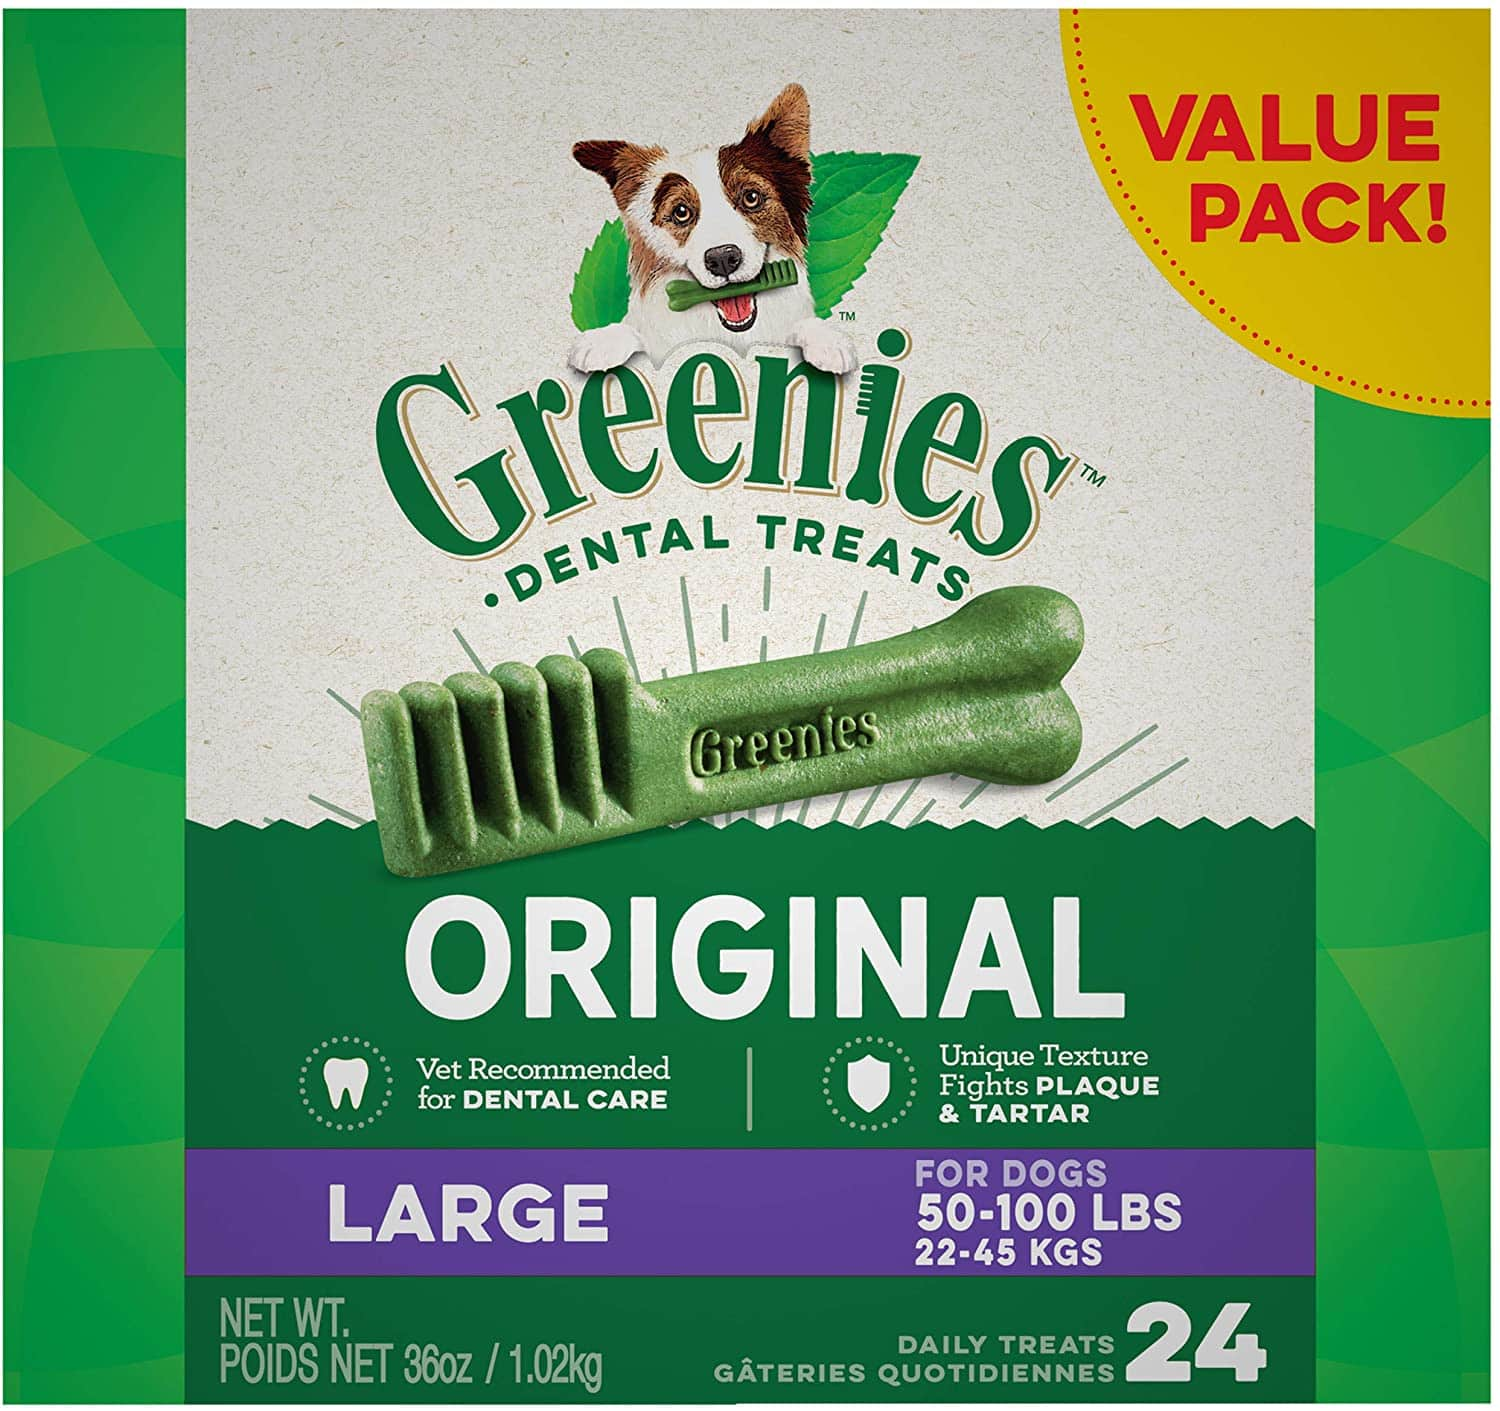 Amazon - Greenies dog treats - 40% off + 5% off with subscribe and save - discount applied to all size treats